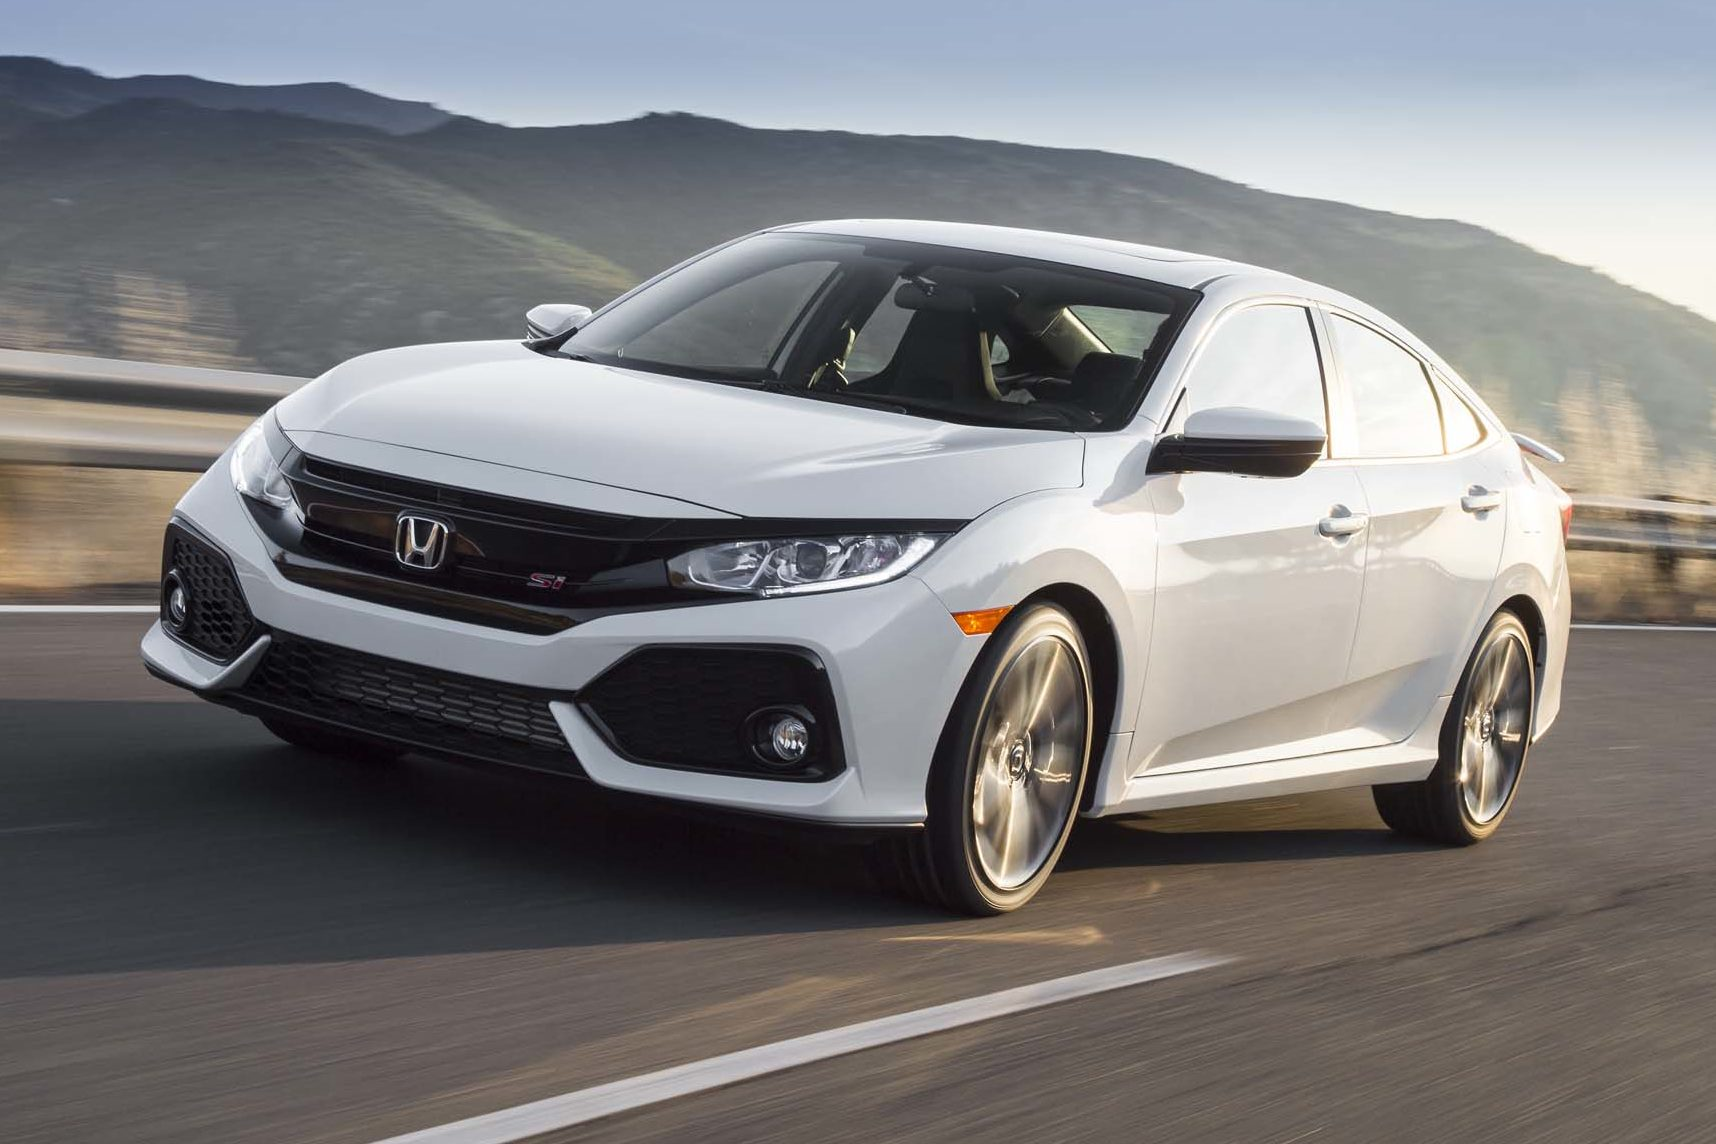 2017 Honda Civic Si Front Three Quarter In Motion 12 E1501104962745